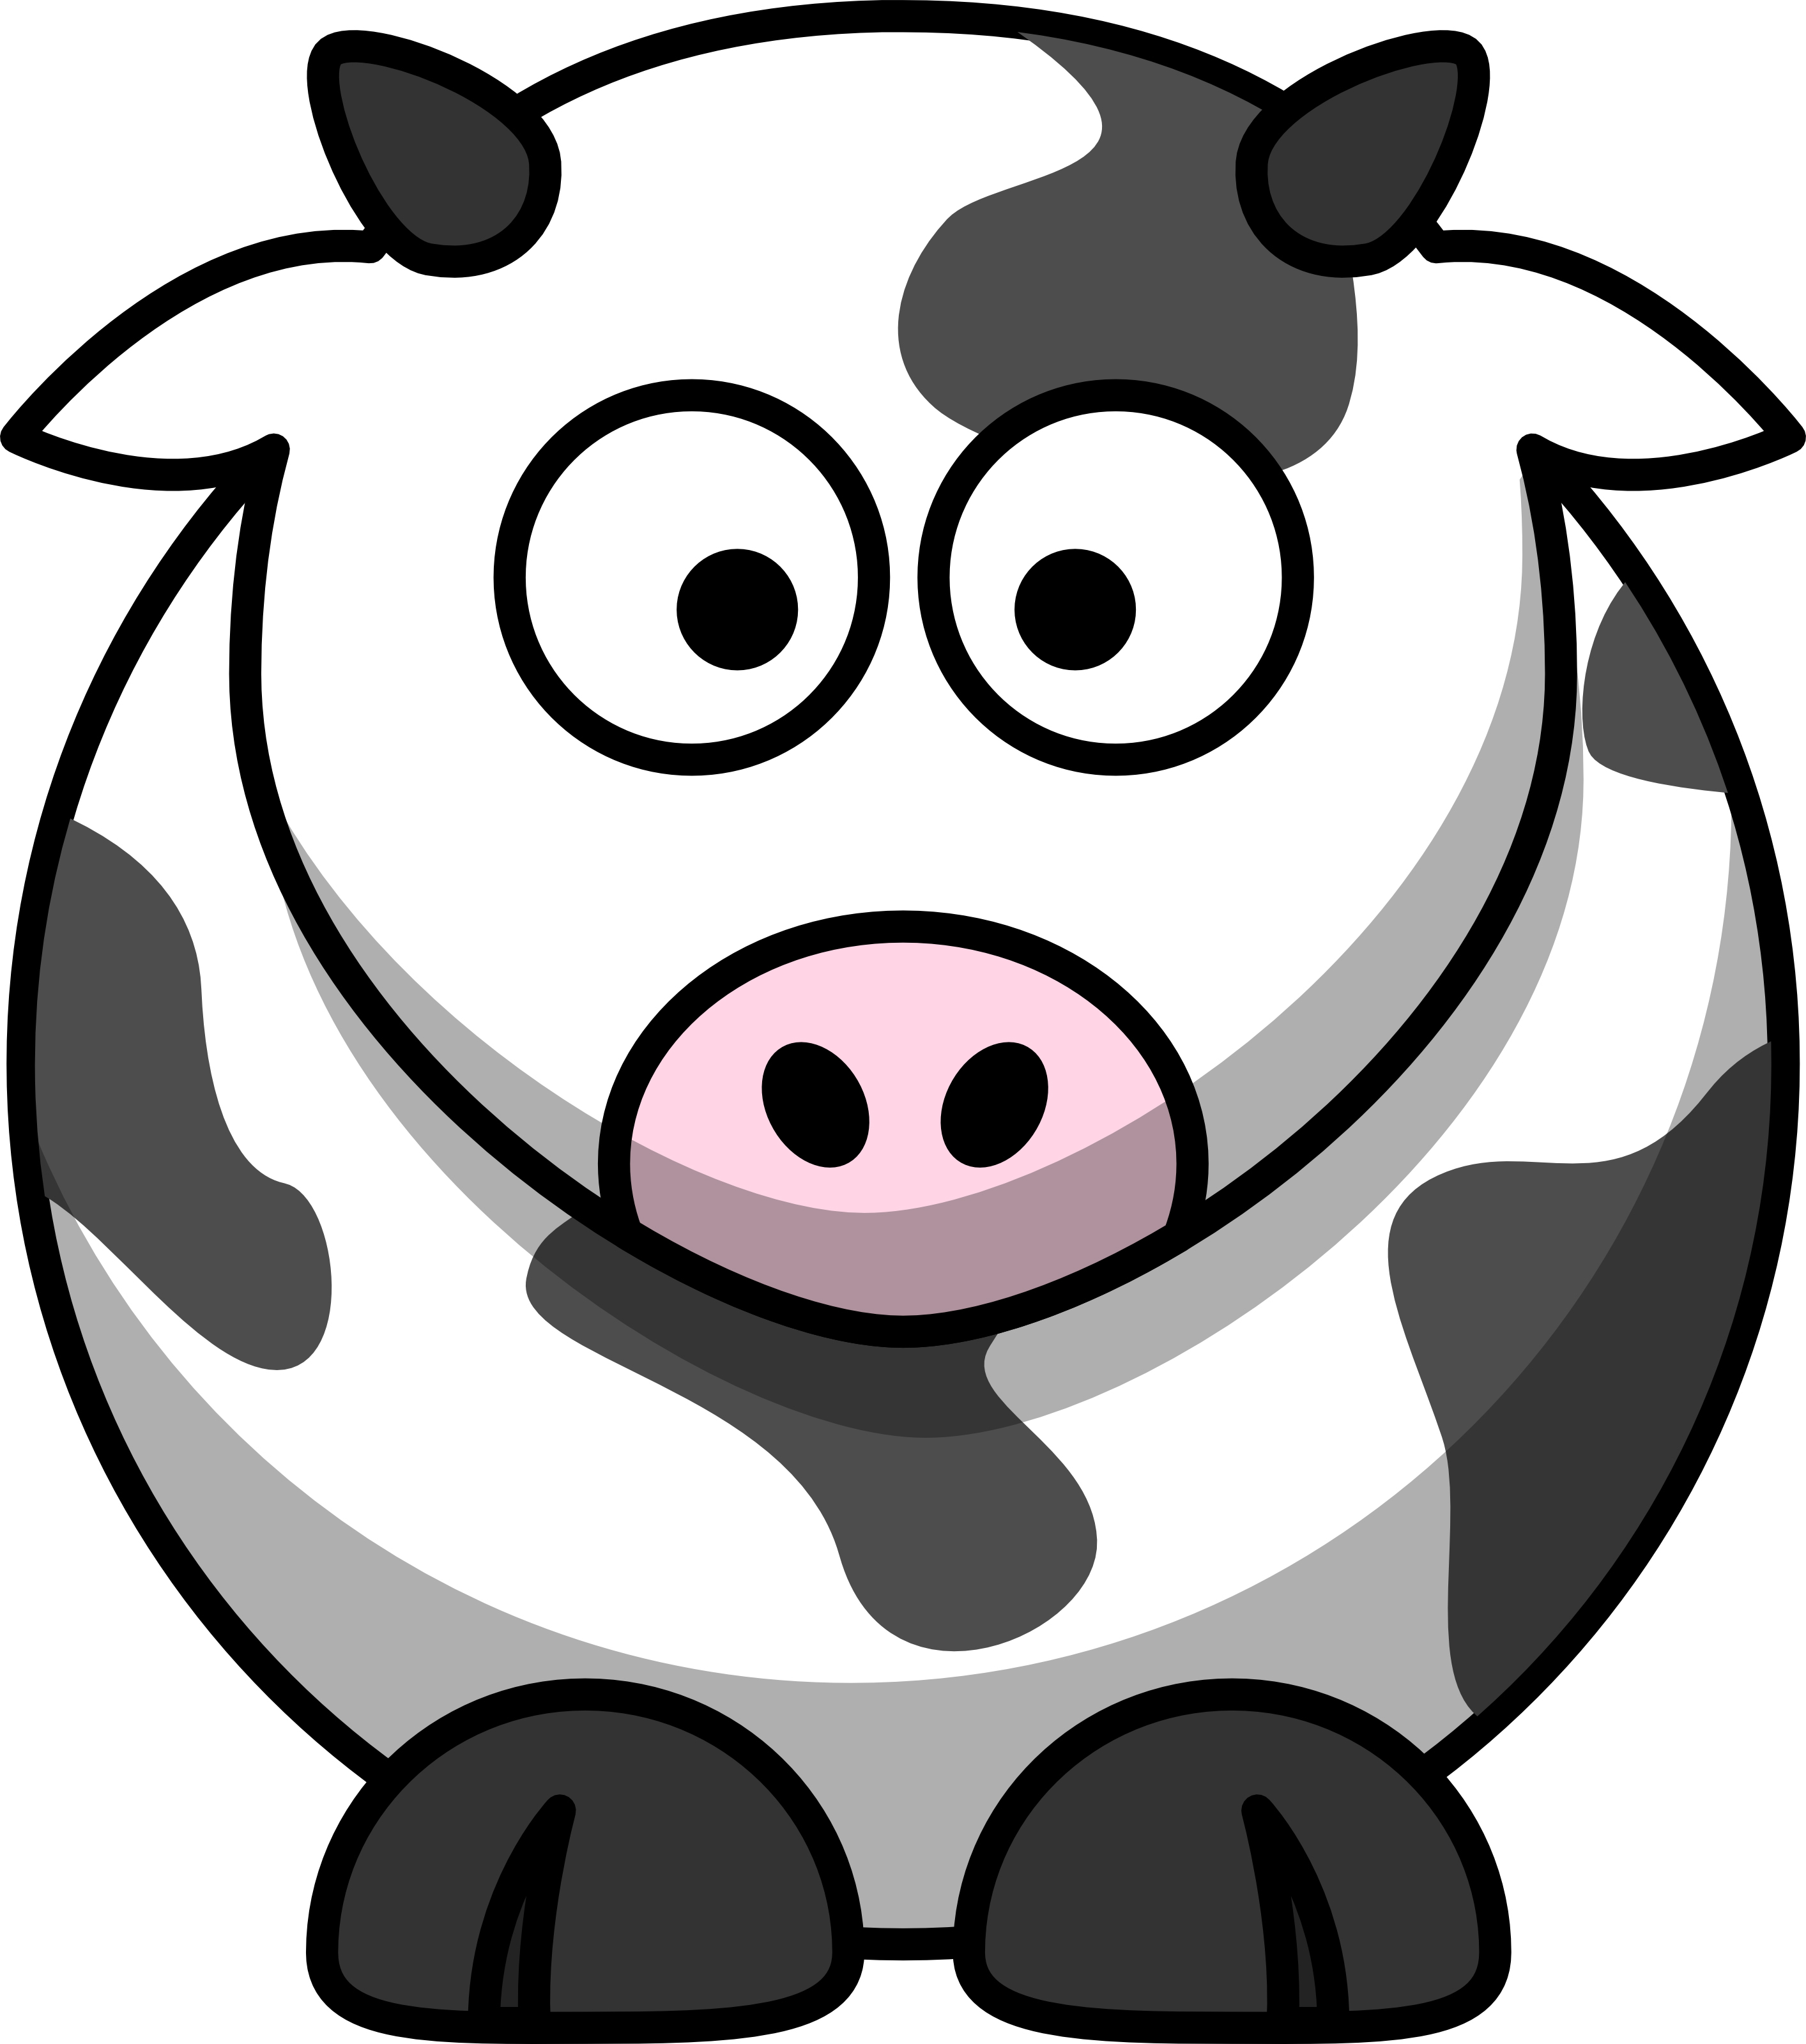 Clipart cow face png transparent download Free Cow Images Free, Download Free Clip Art, Free Clip Art on ... png transparent download